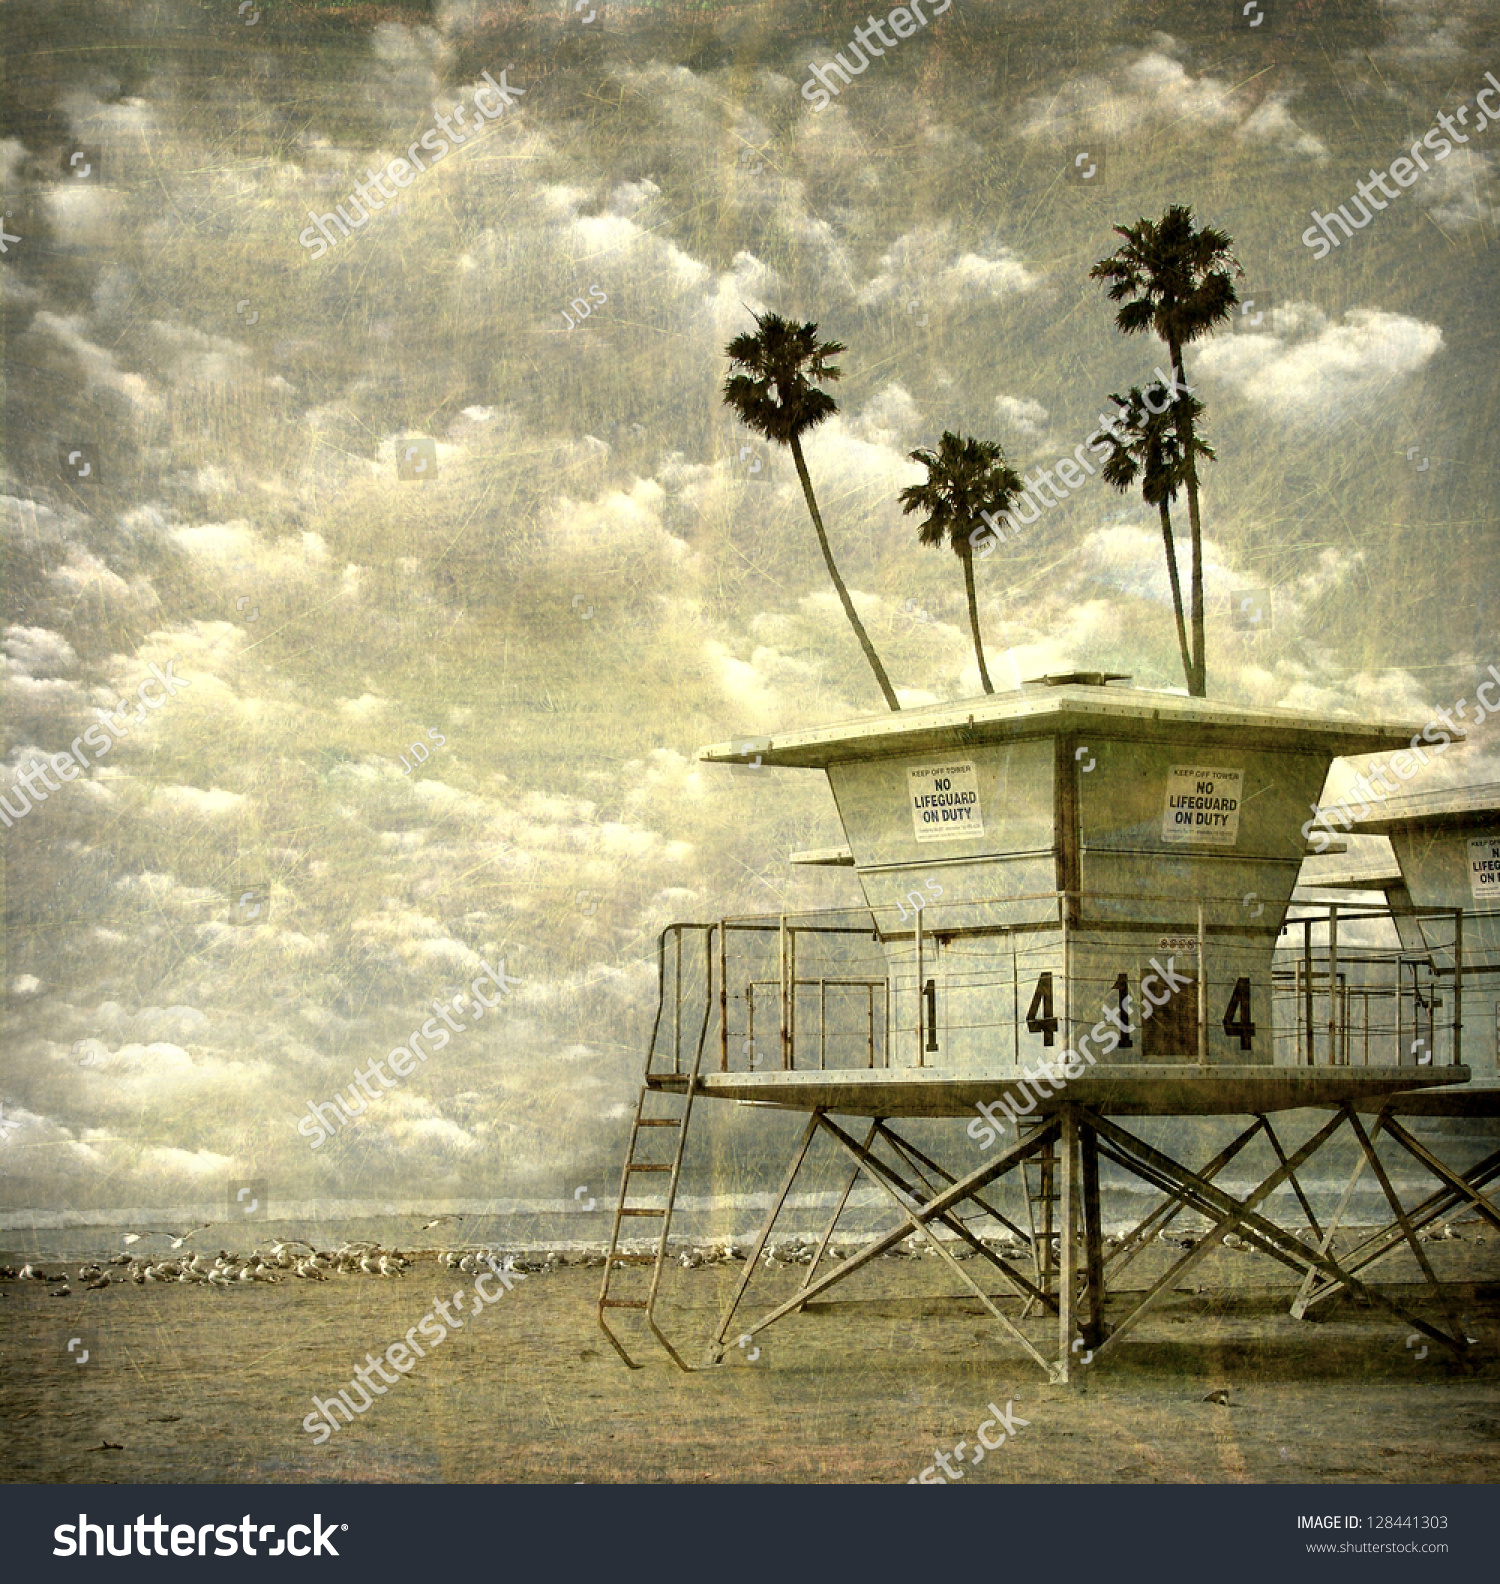 Aged And Worn Vintage Photo Of Lifeguard Towers On Beach